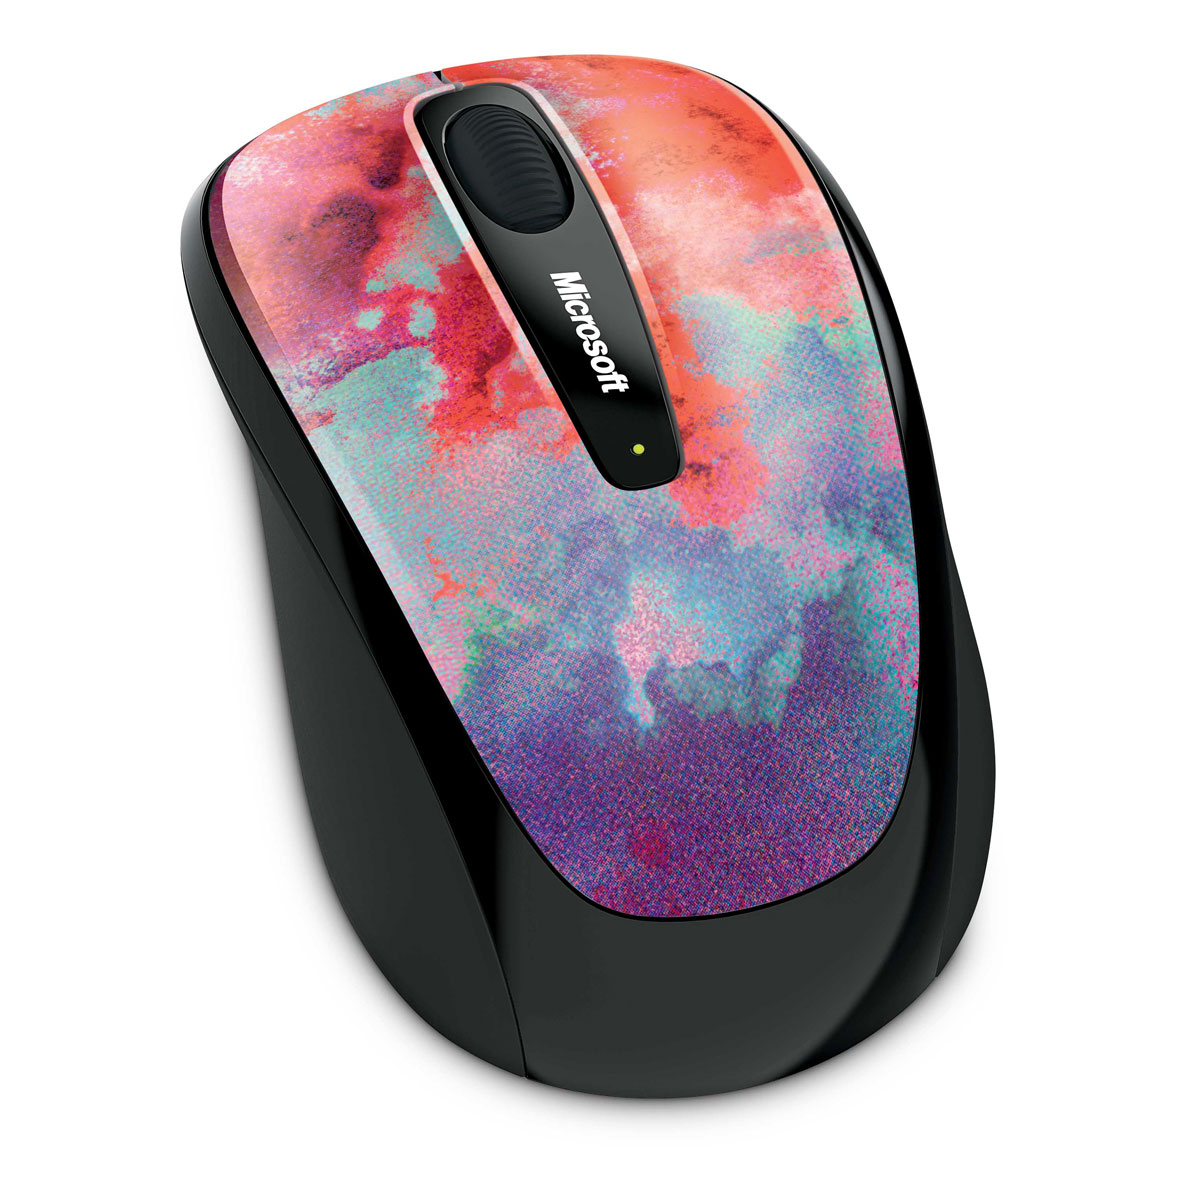 microsoft wireless mobile mouse 3500 artist edition tchmo. Black Bedroom Furniture Sets. Home Design Ideas